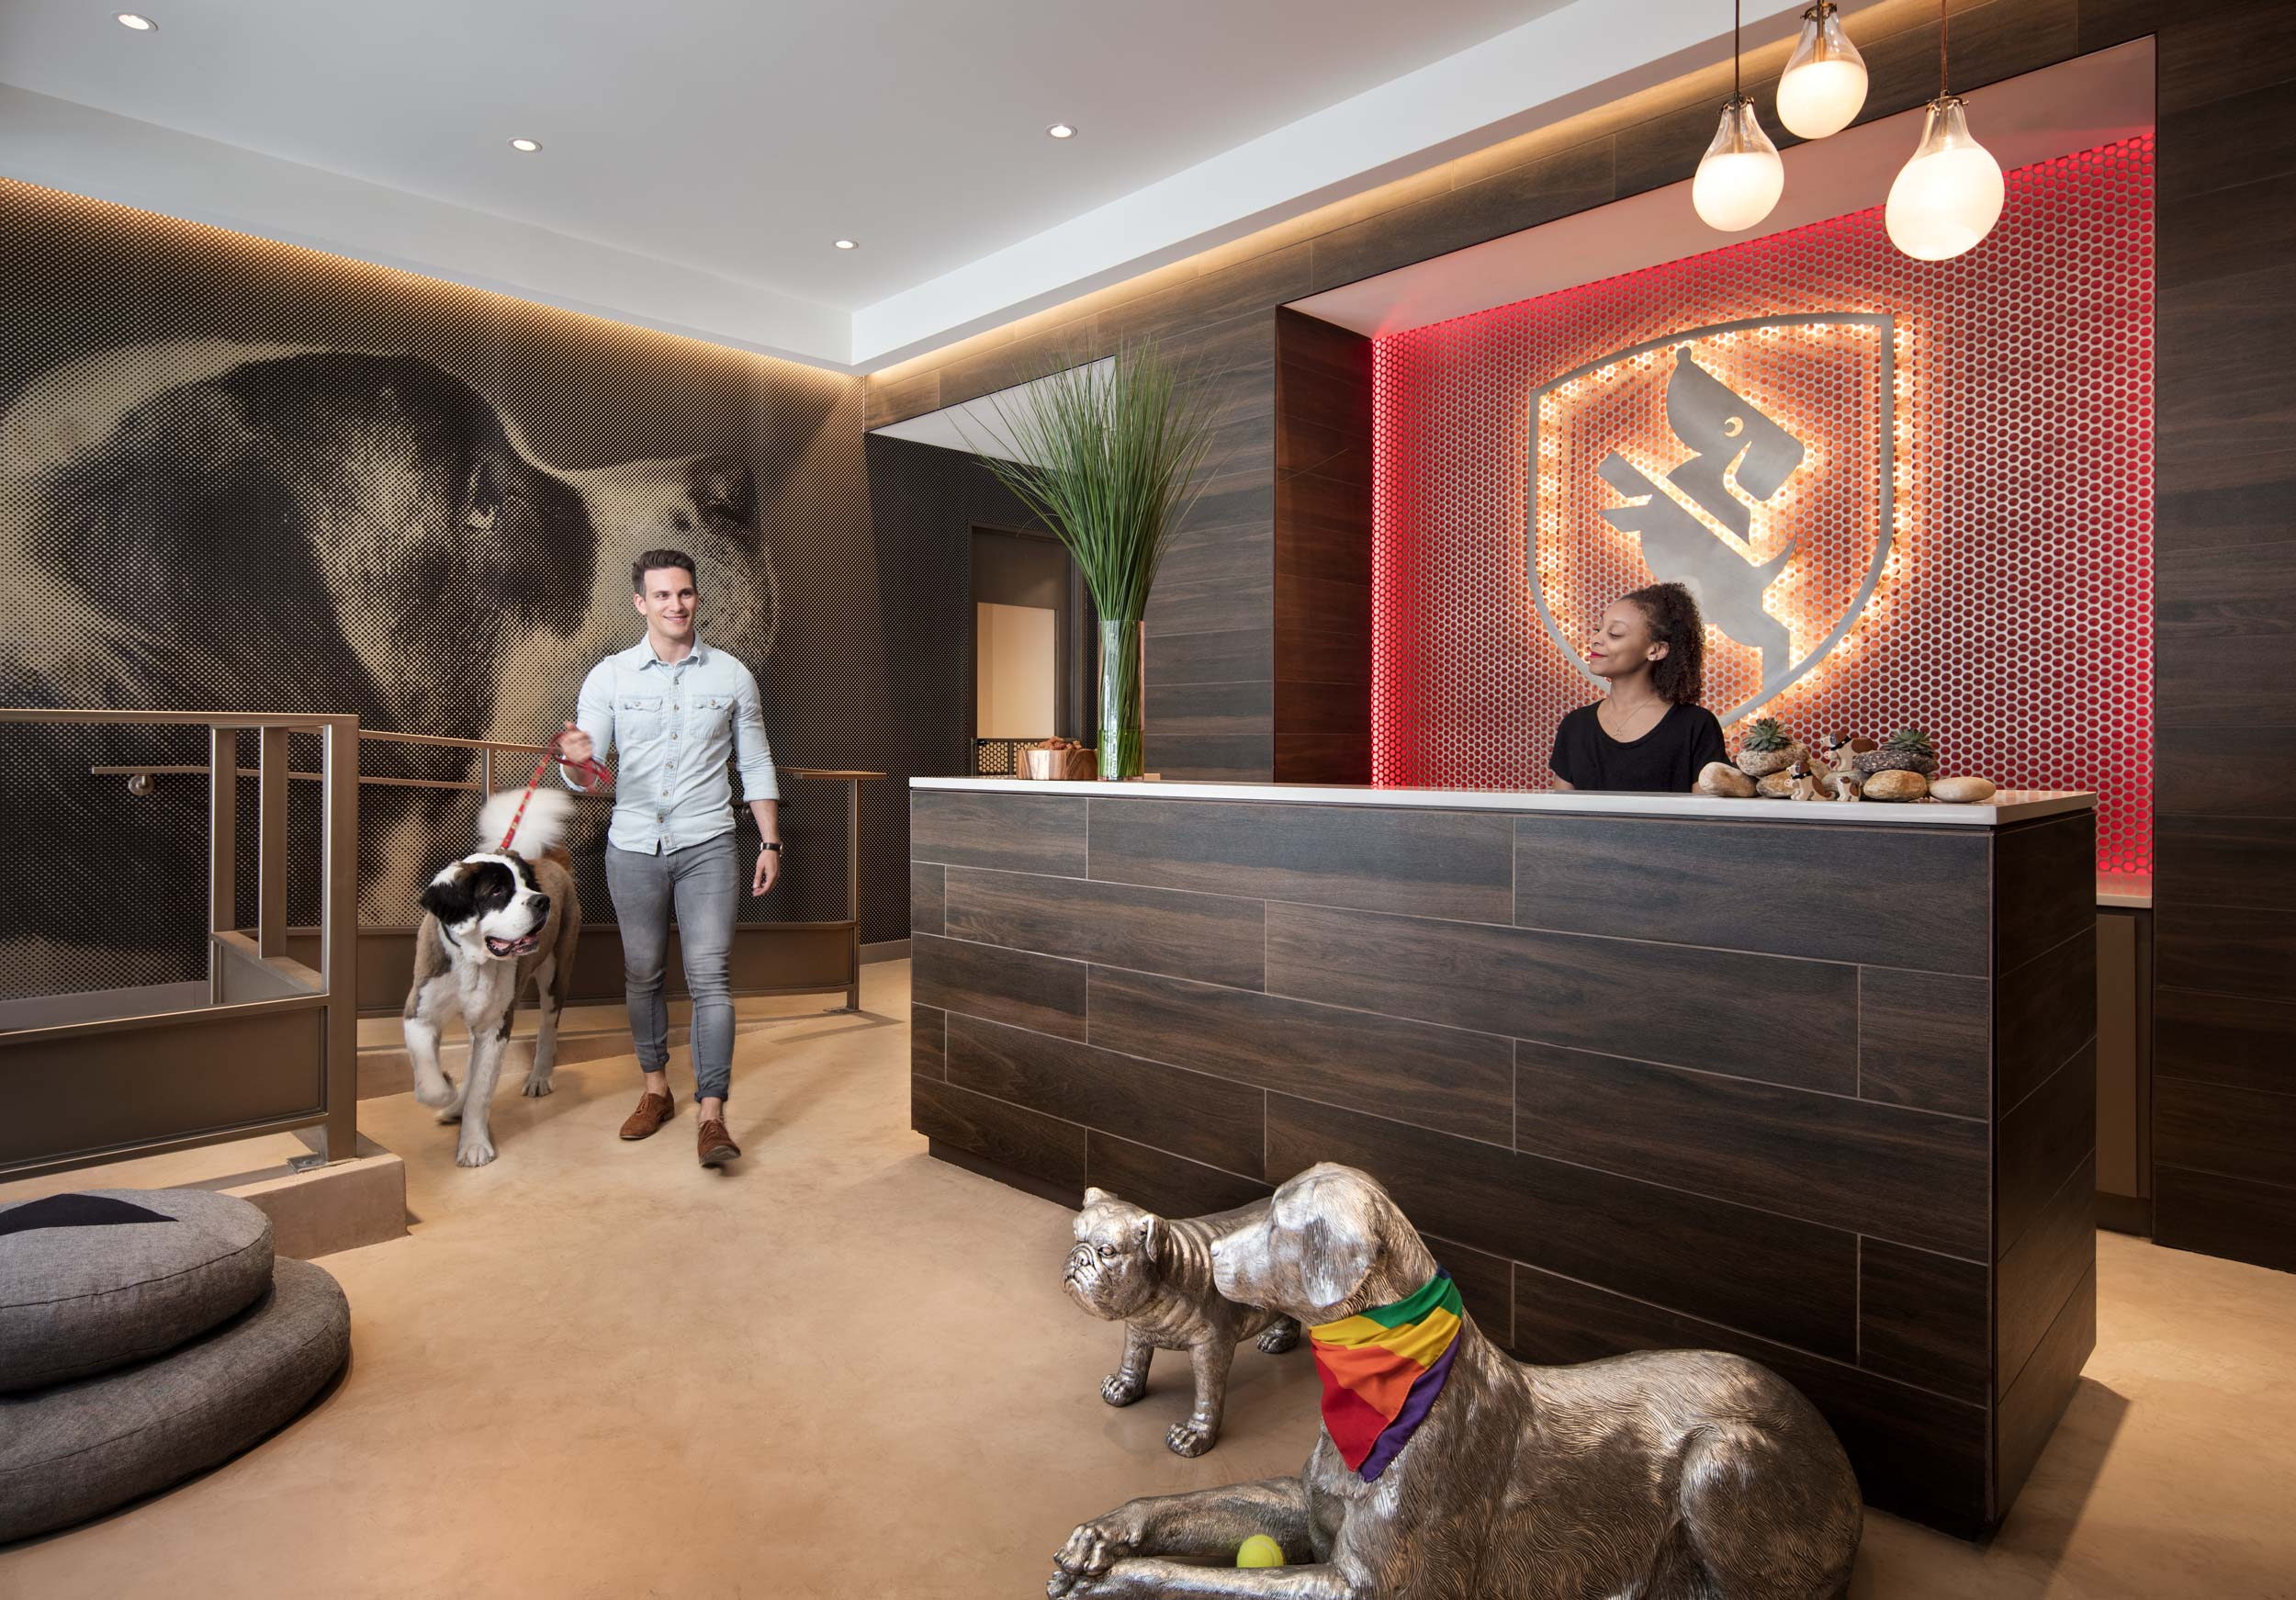 Dog City Doggy Daycare at Caladonia in Chelsea by the Related Companies